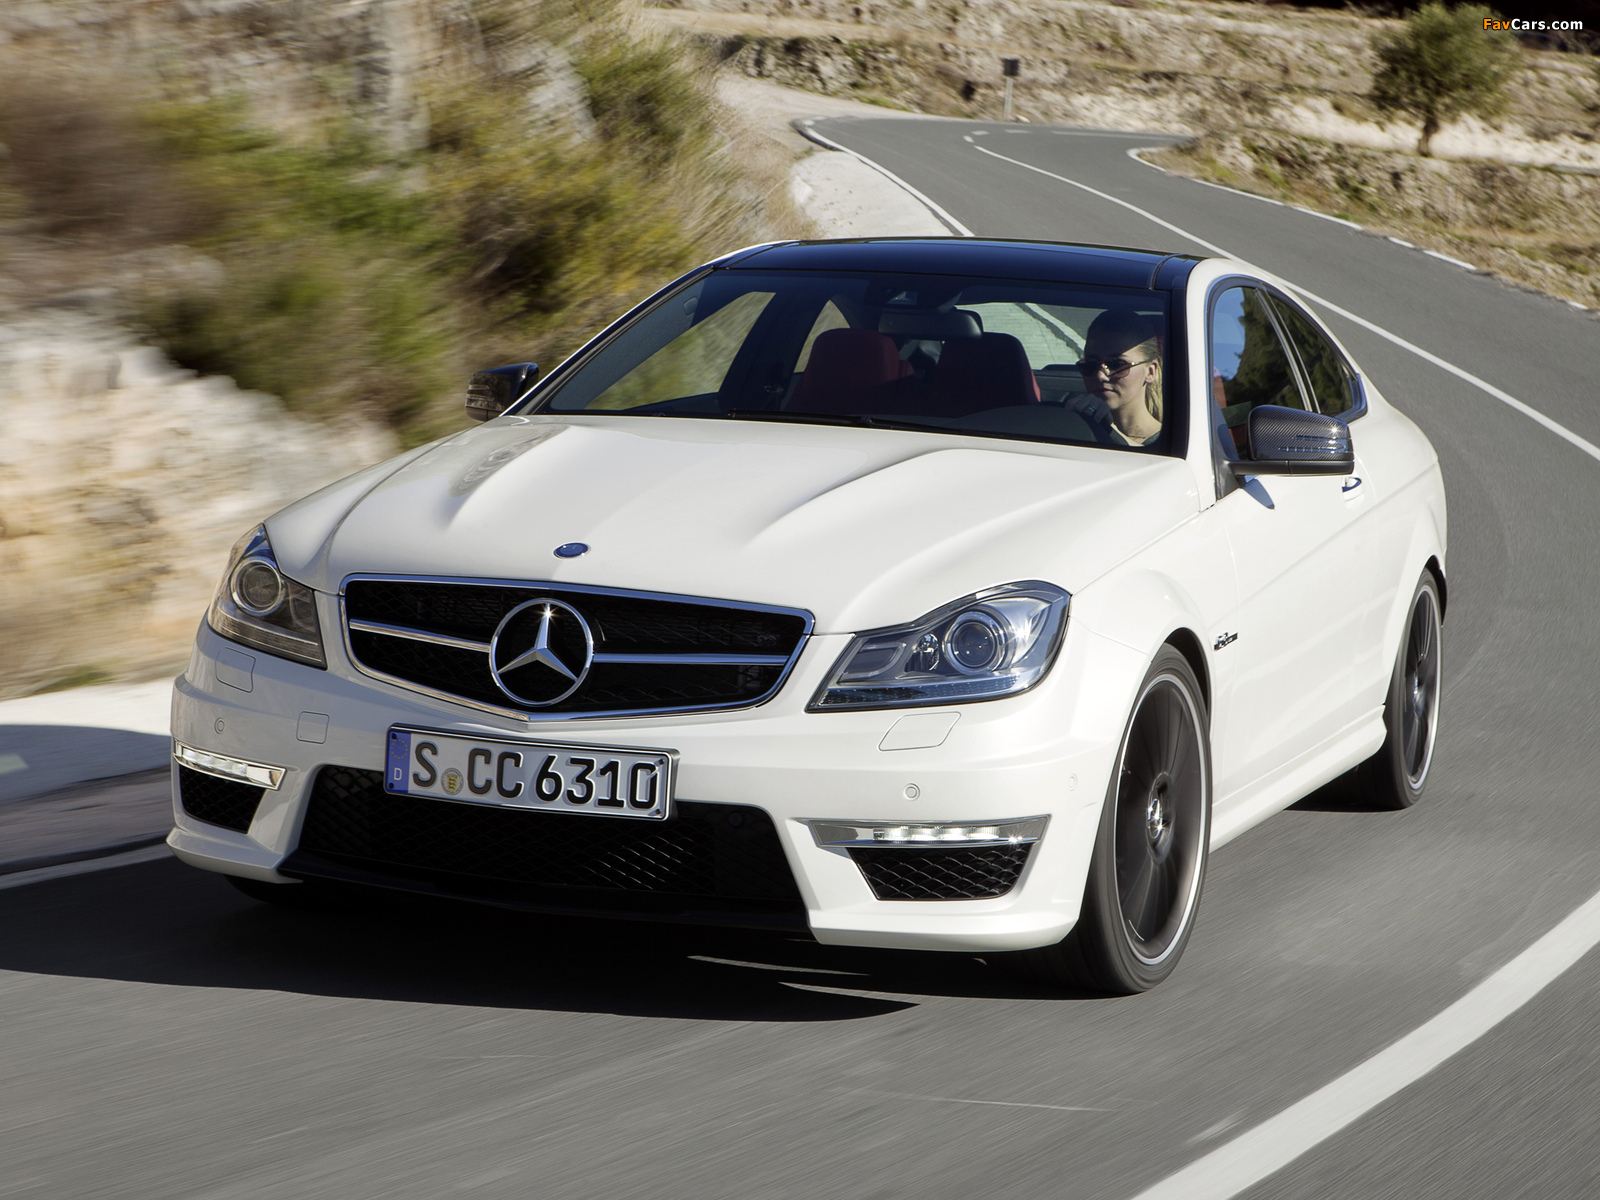 Mercedes-Benz C 63 AMG Coupe (C204) 2011 wallpapers (1600 x 1200)